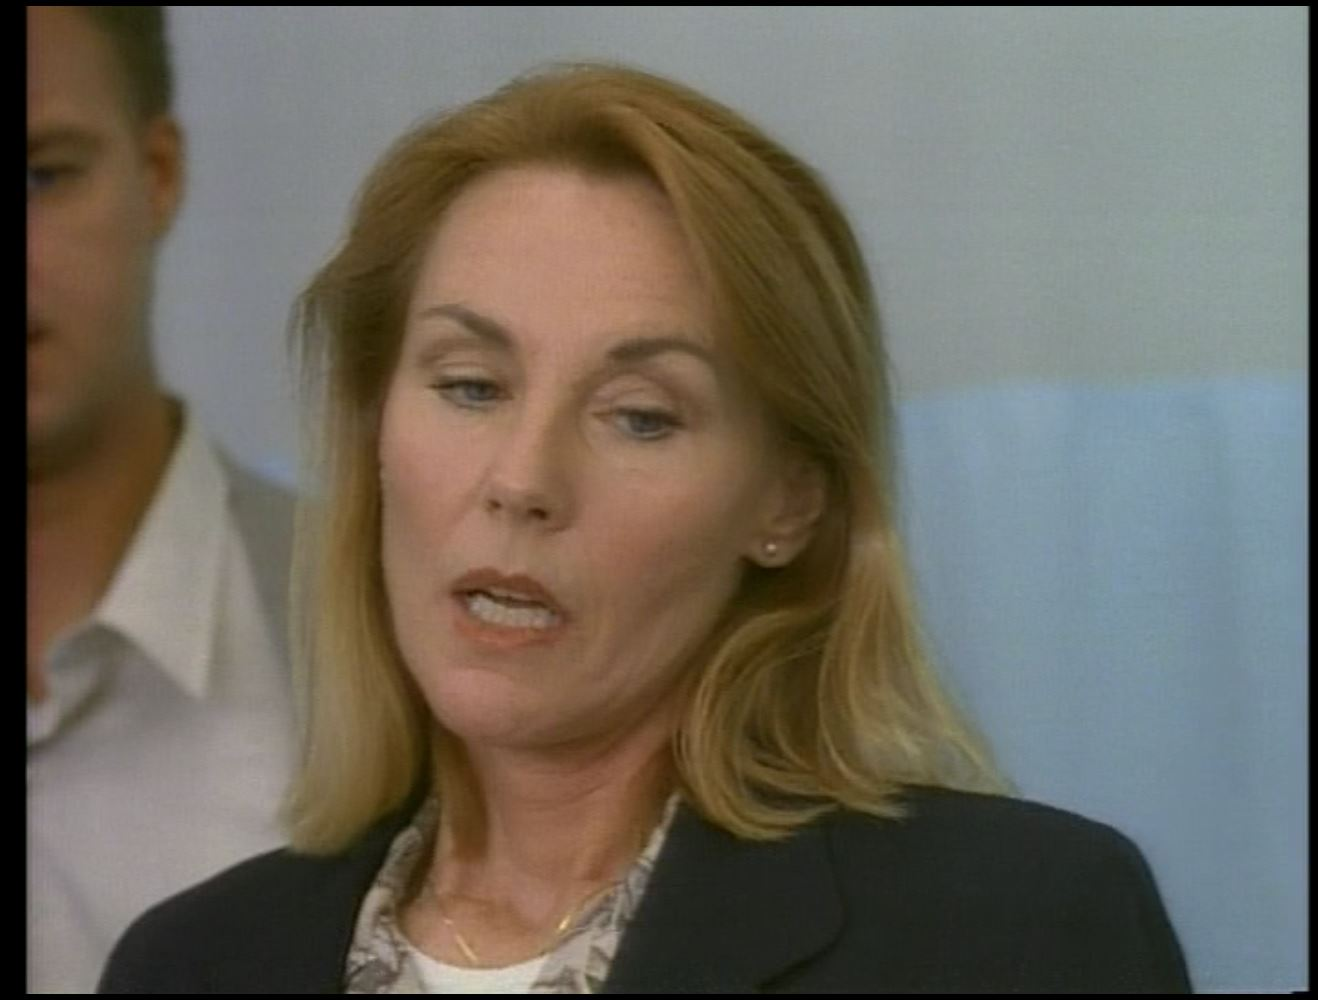 Forum on this topic: Brett Butler (actress), amy-gumenick/